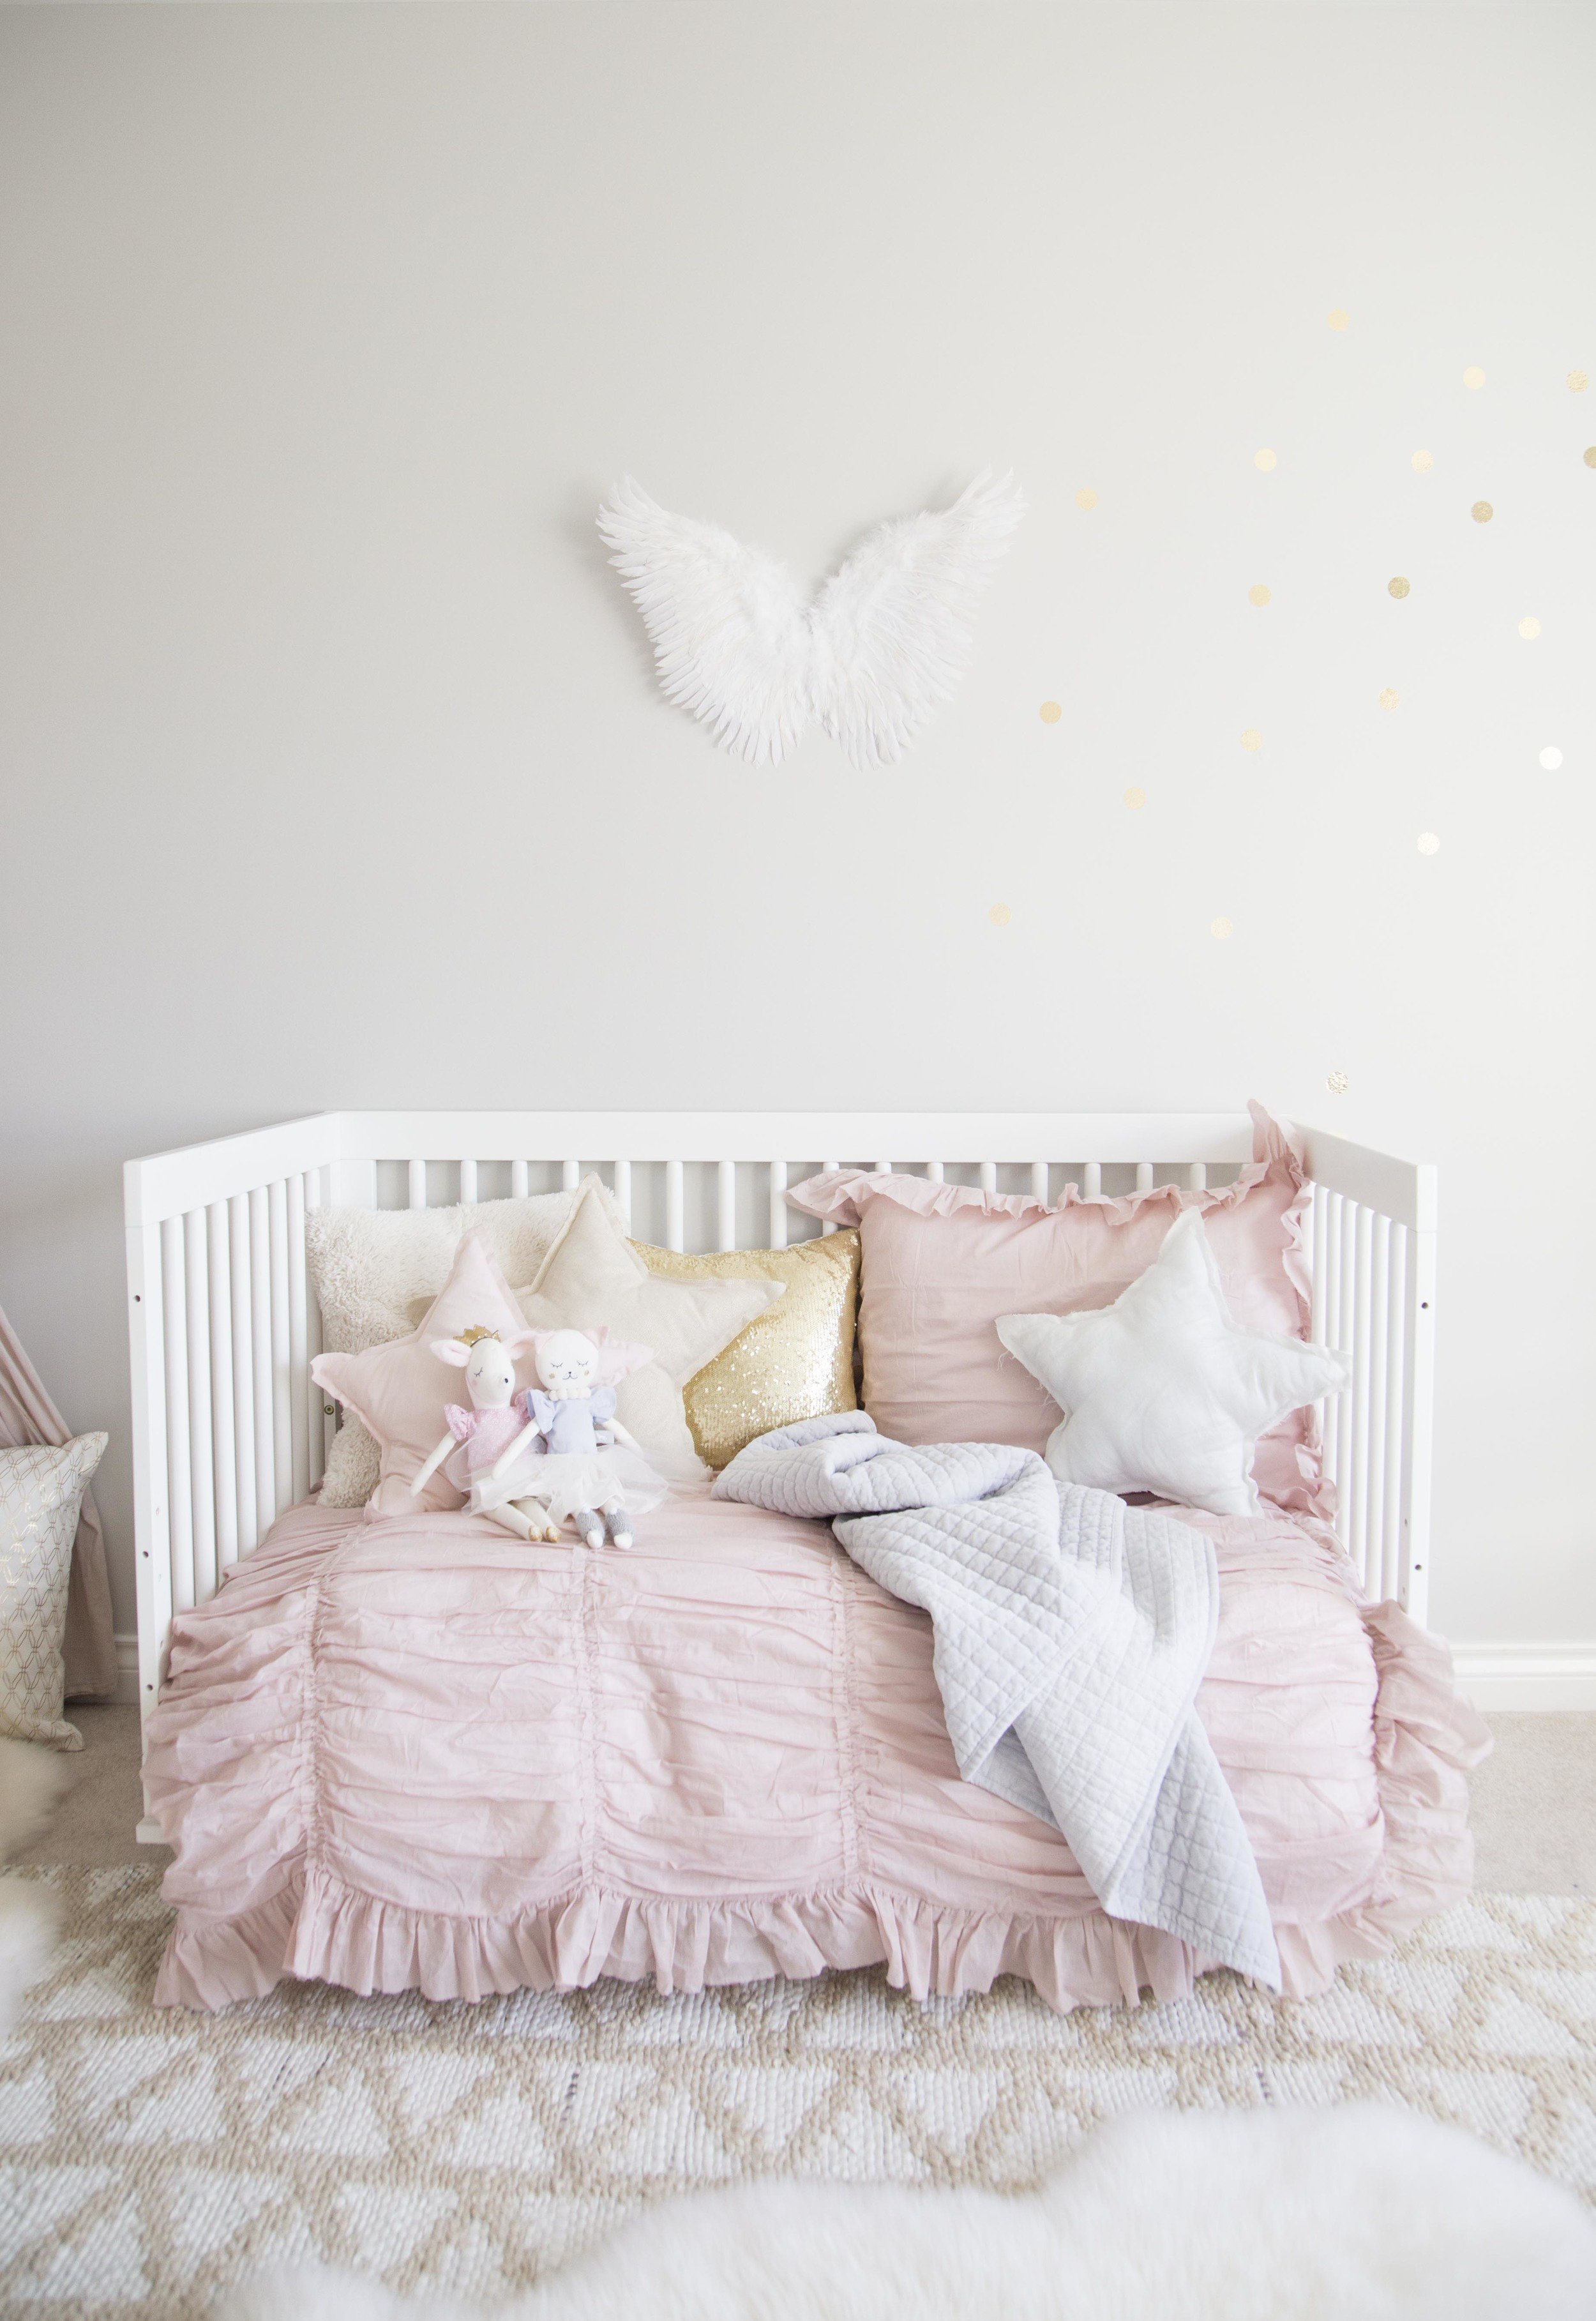 soft pink bedding on girl daybed with star pillows and angel wings on wall behind